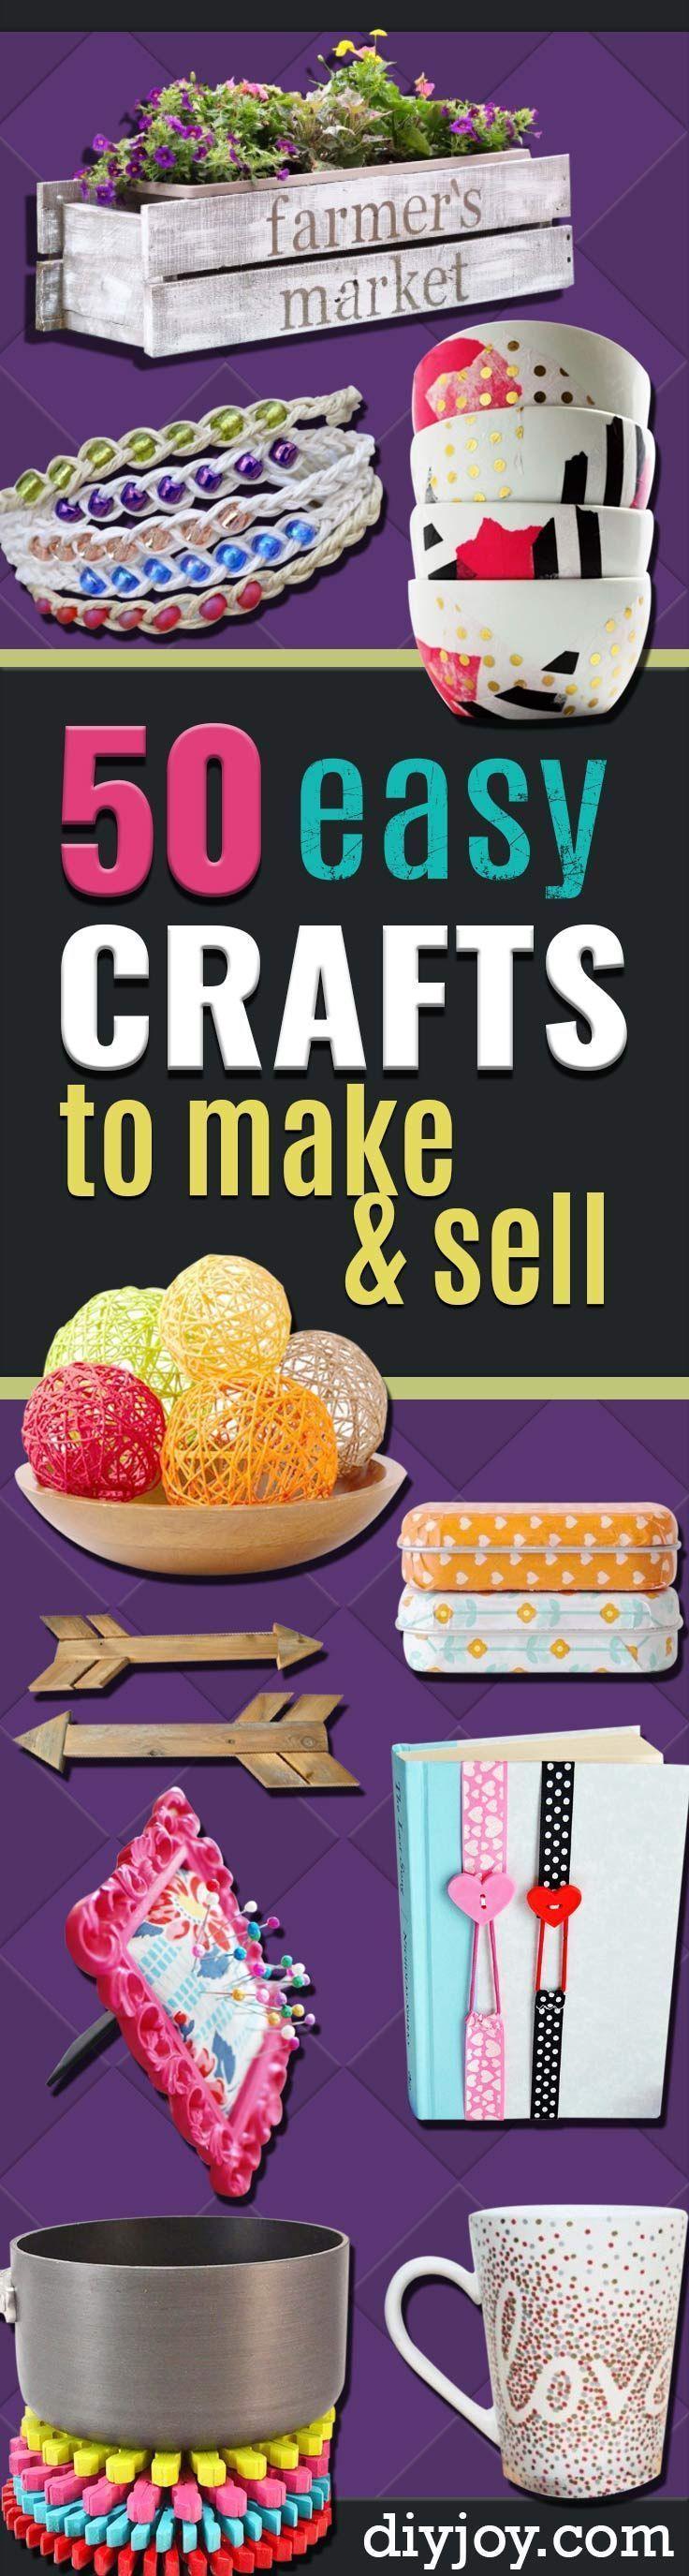 197 best images about entrepreneur day ideas for students for Making craft items to sell